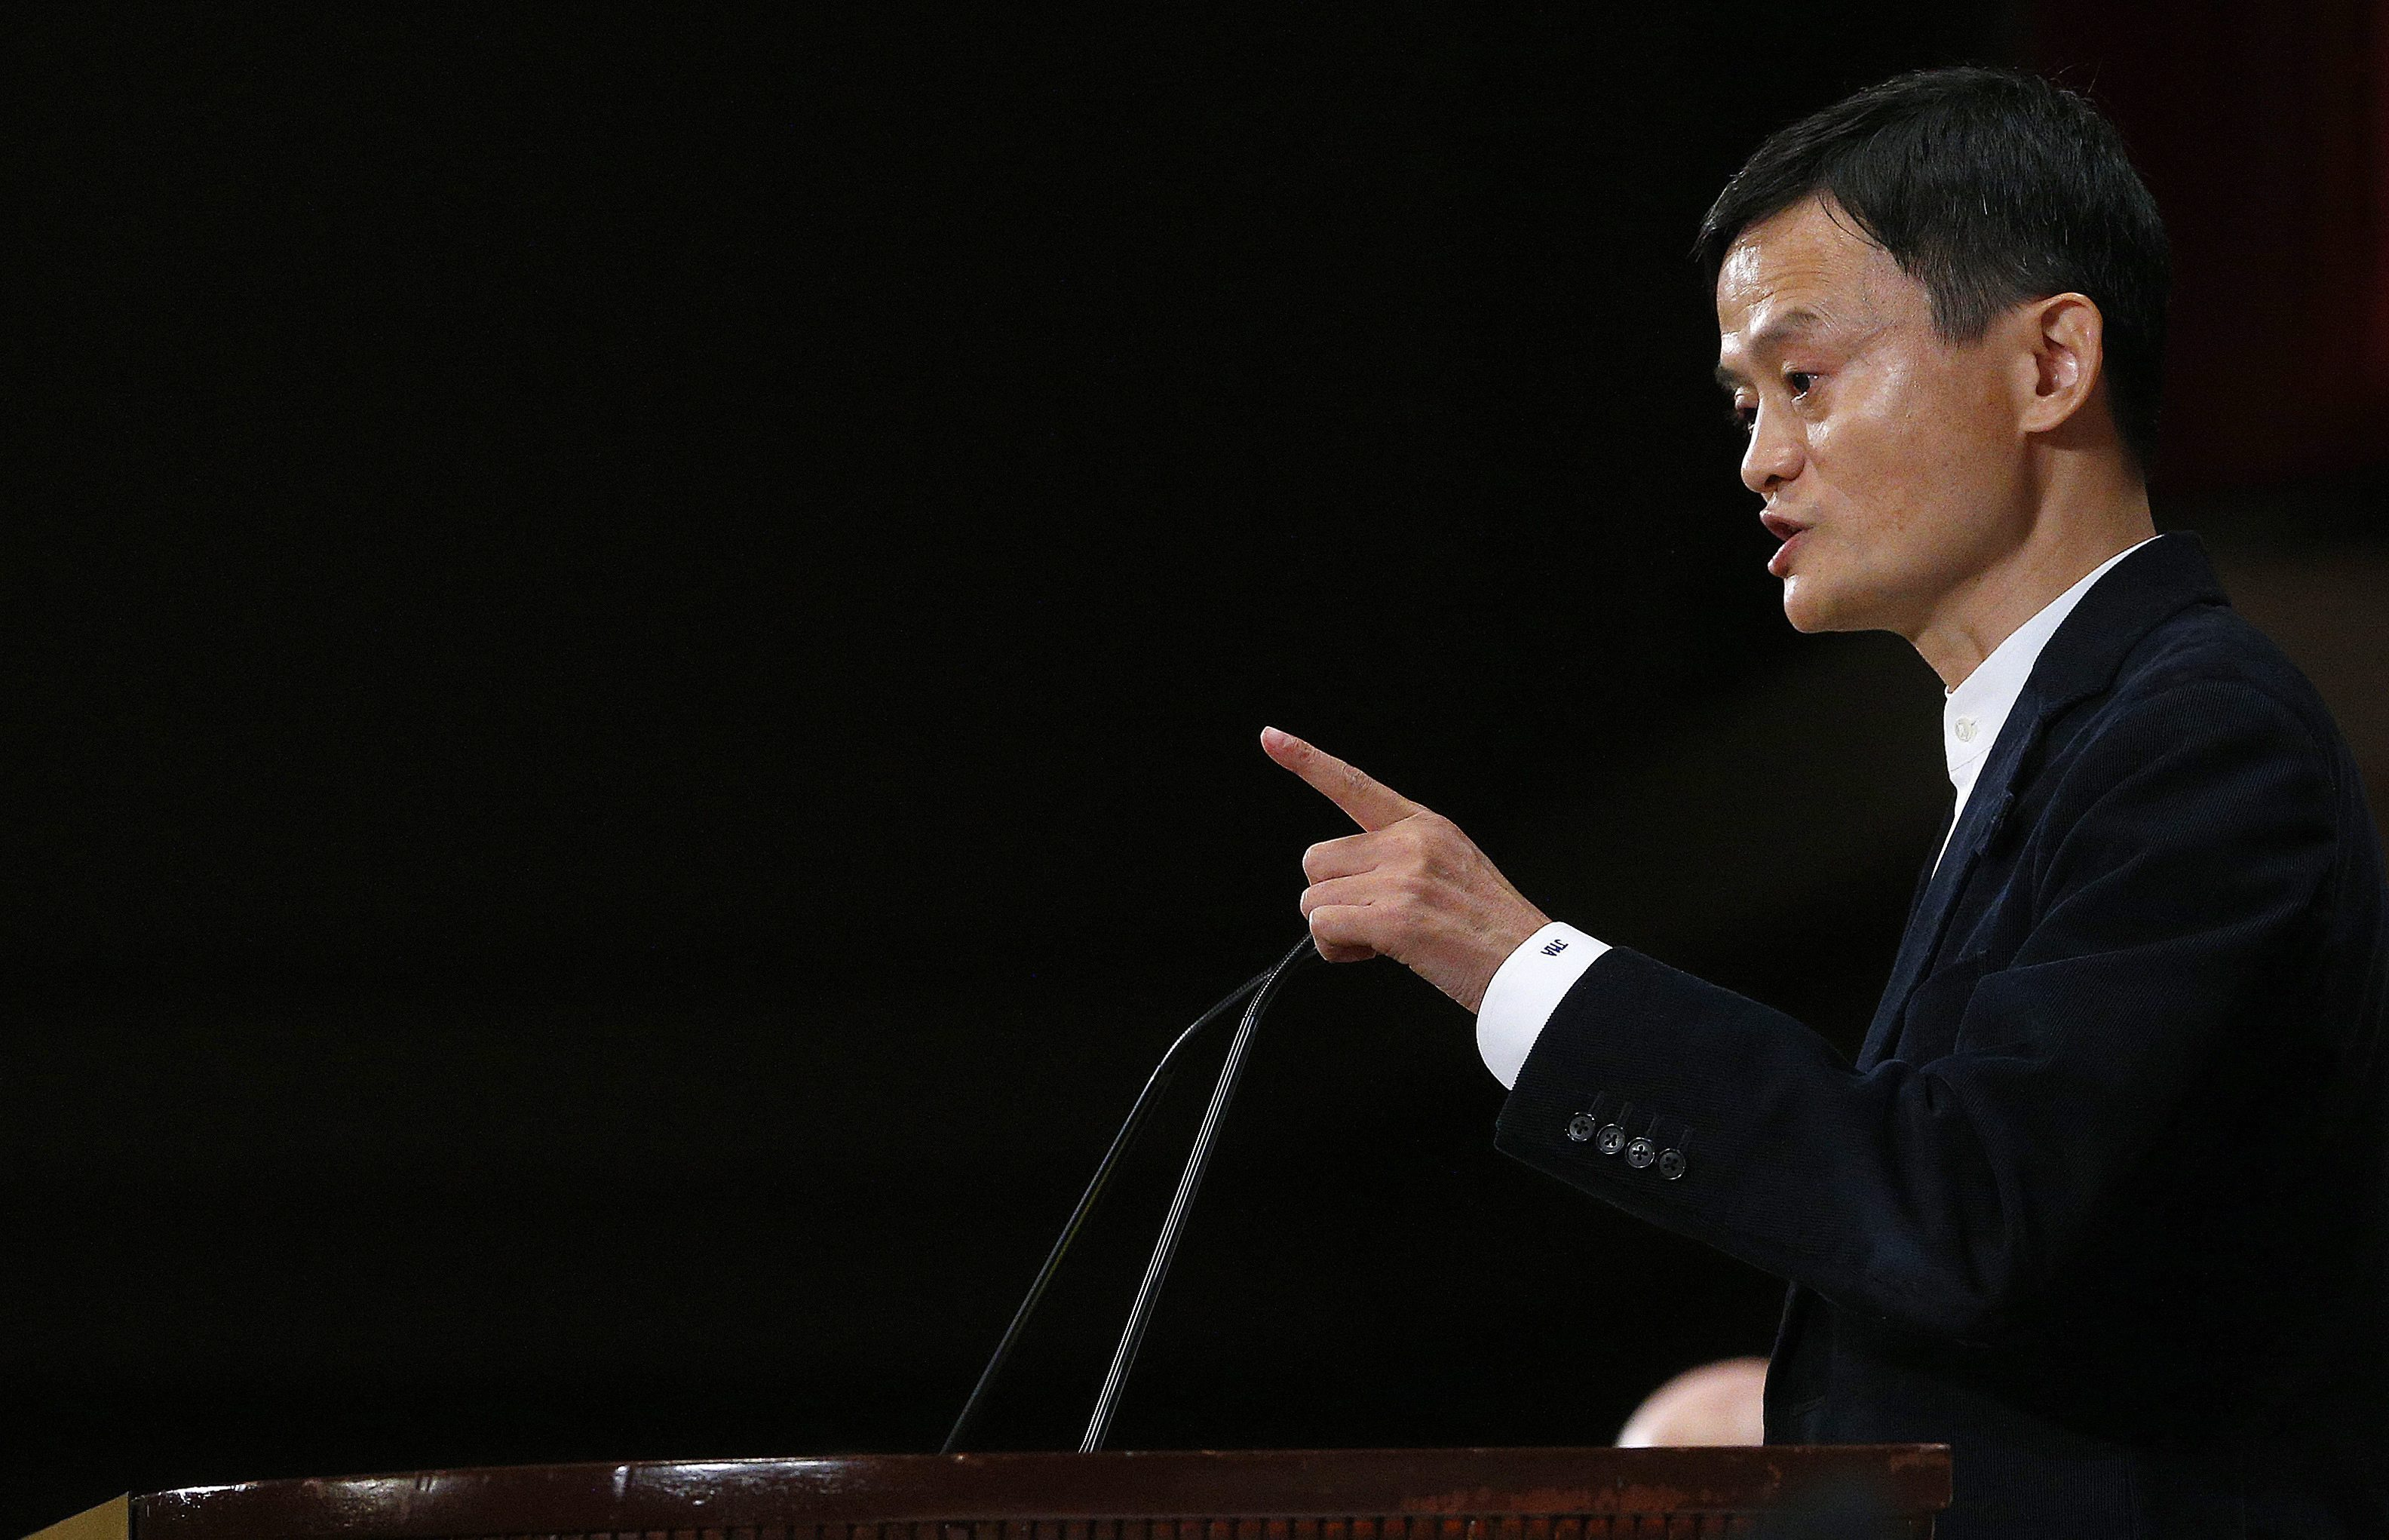 epa04790941 Alibaba founder and executive chairman, Jack Ma, speaks at The Economic Club of New York, in New York, New York, USA, 09 June 2015. EPA/ANDREW GOMBERT